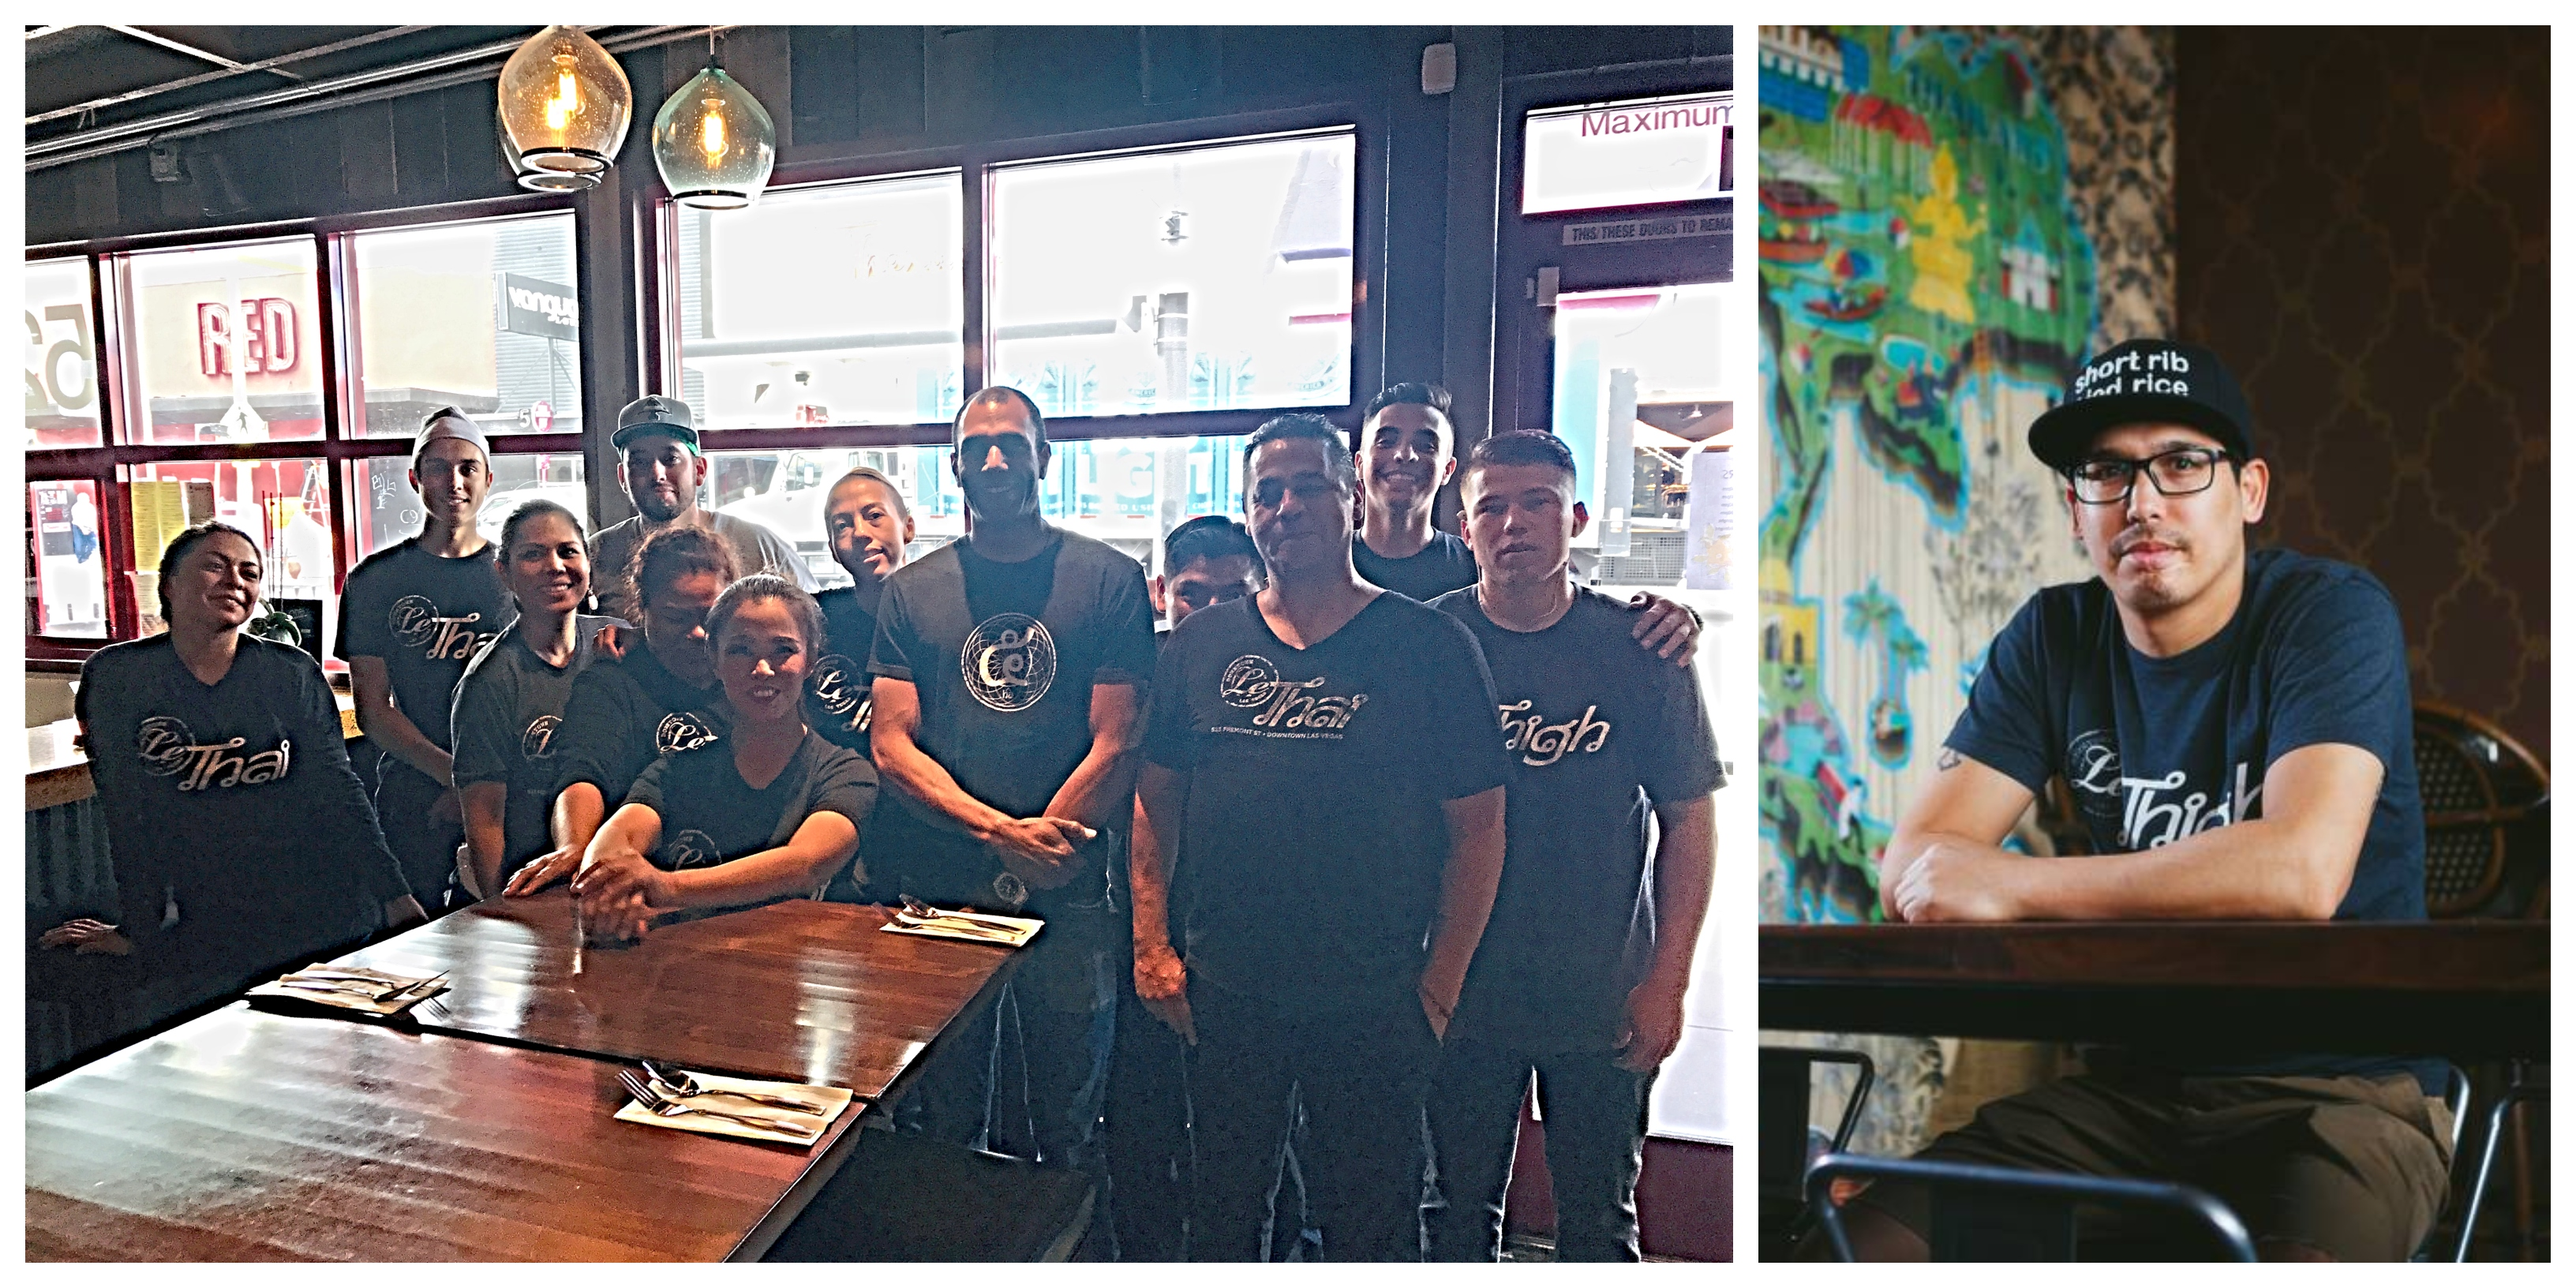 BeFunky-collage-LeThai-Dan-Coughlin-Team